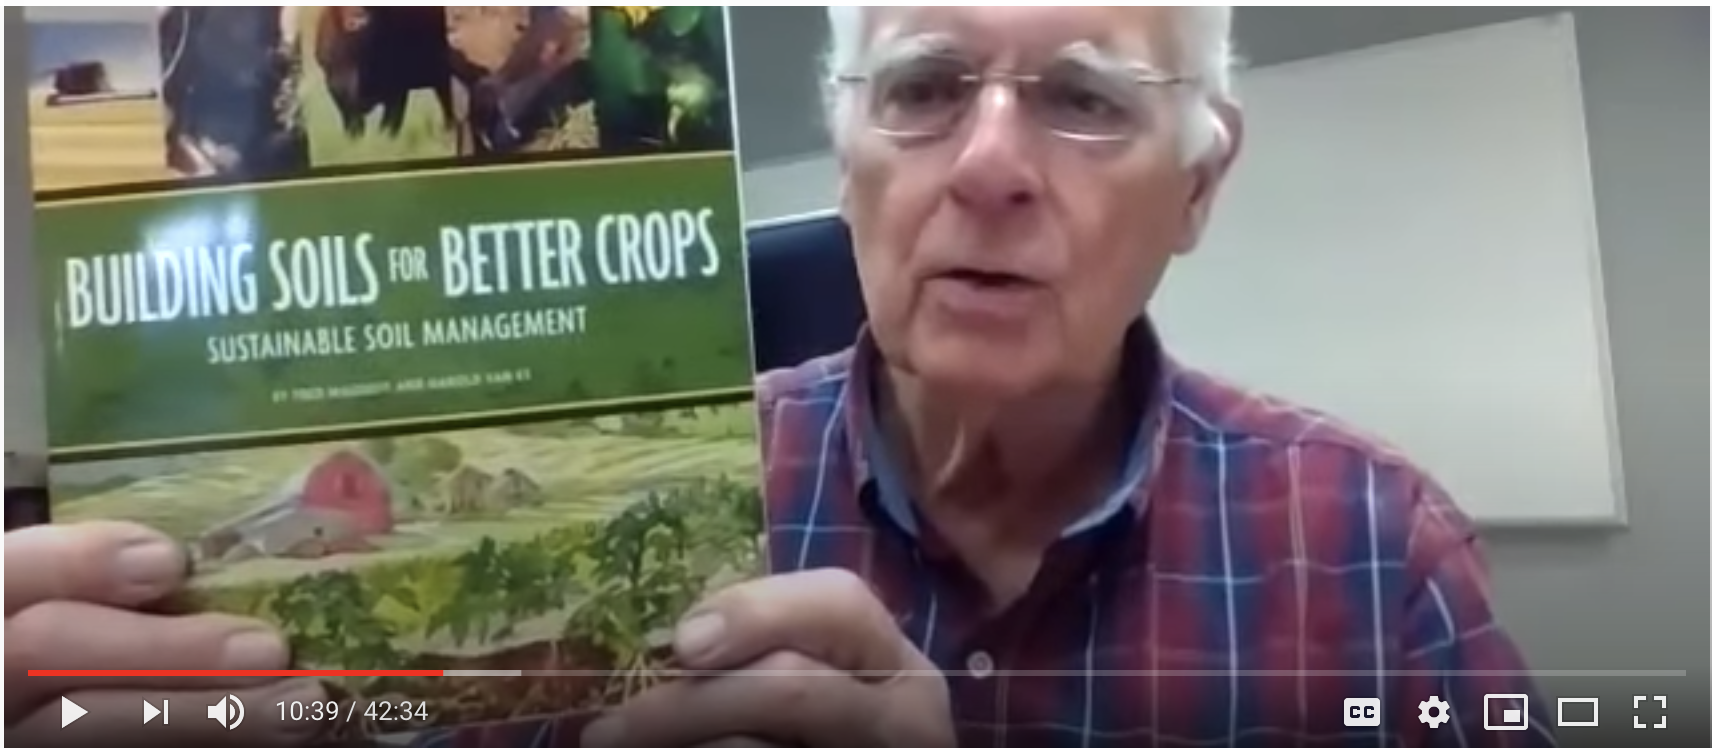 Man holding up book on cover crops